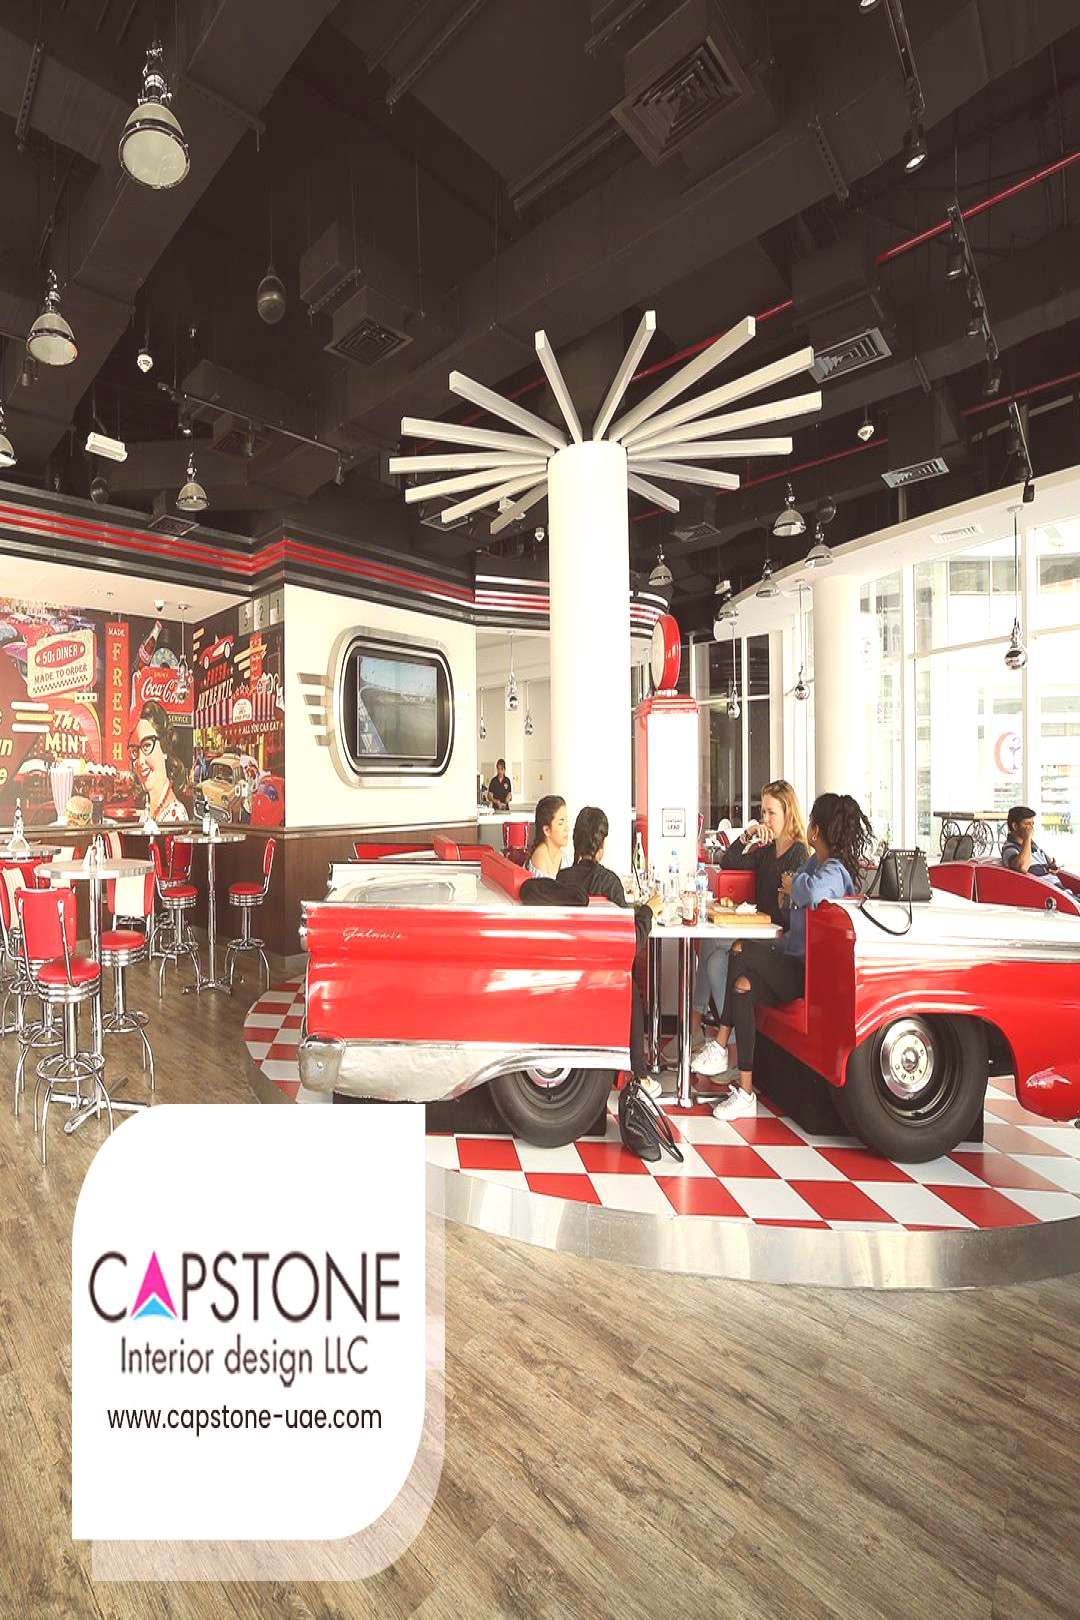 Restaurant Interior Project in American Diner at Abu Dhabi, UAE by Capstone Interior Design If you